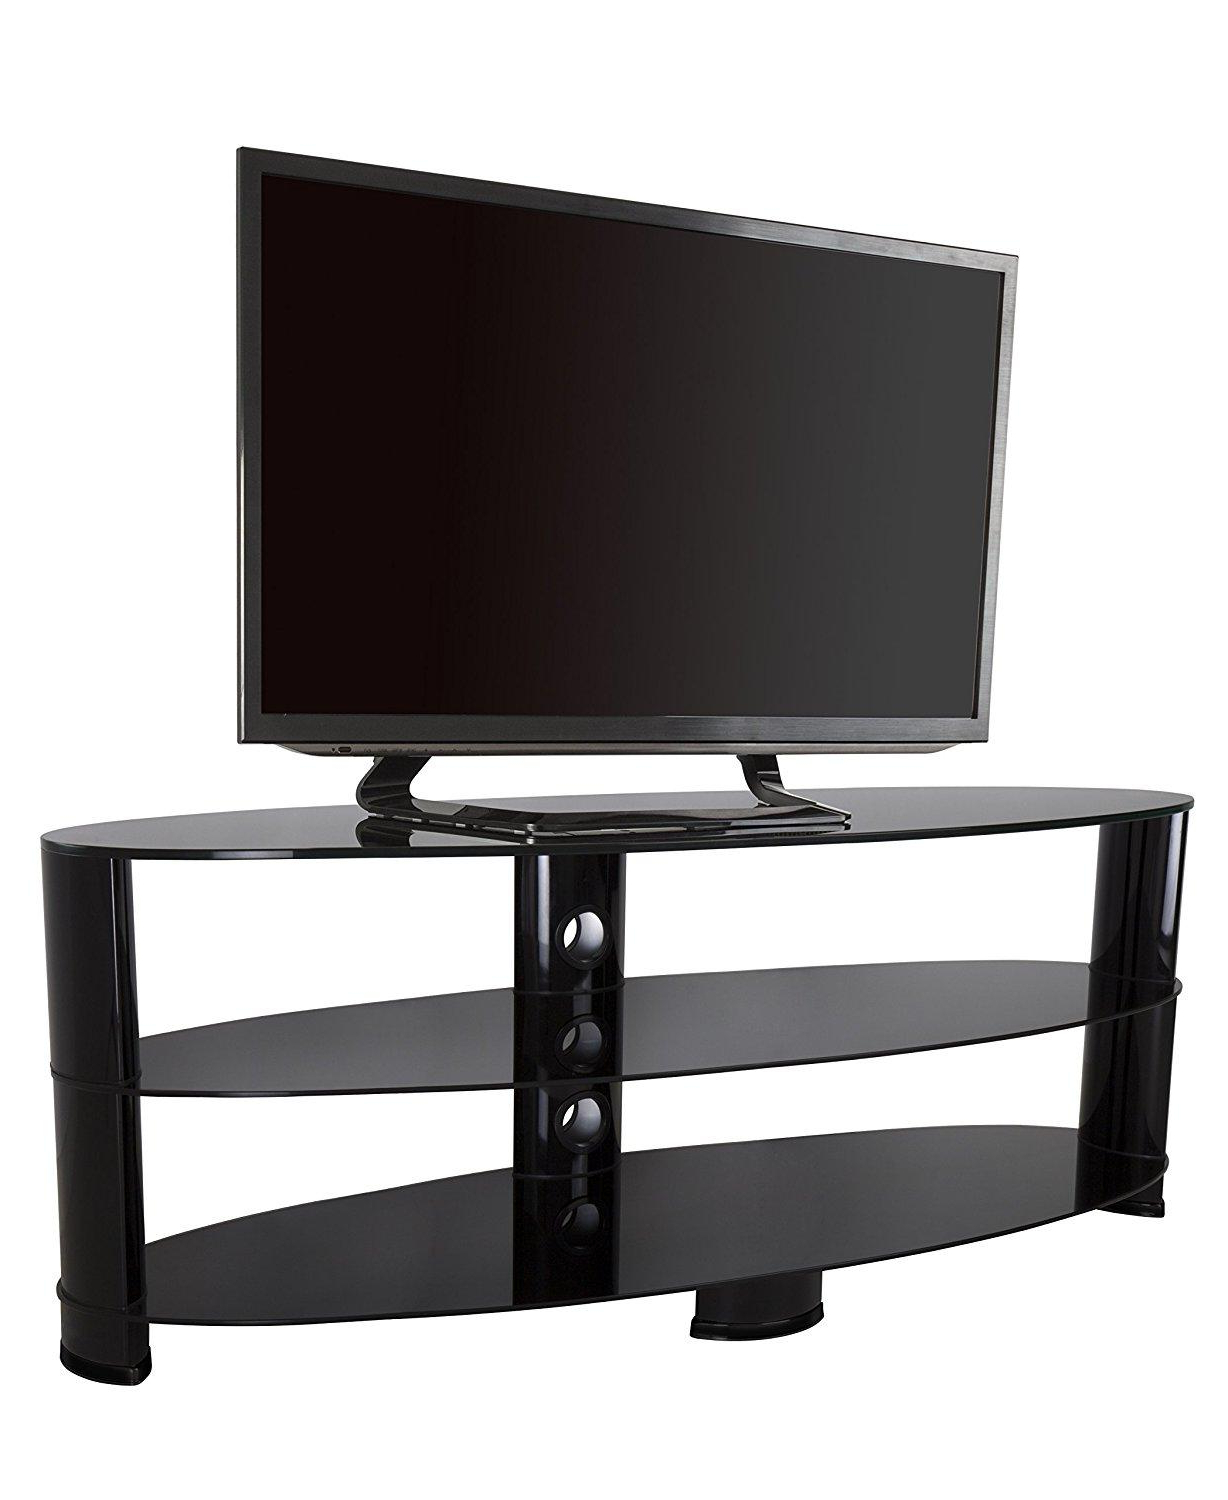 Amazon: Avf Ovl1200bb A Oval Tv Stand, Black And Black Glass Pertaining To Widely Used Preston 66 Inch Tv Stands (View 5 of 20)